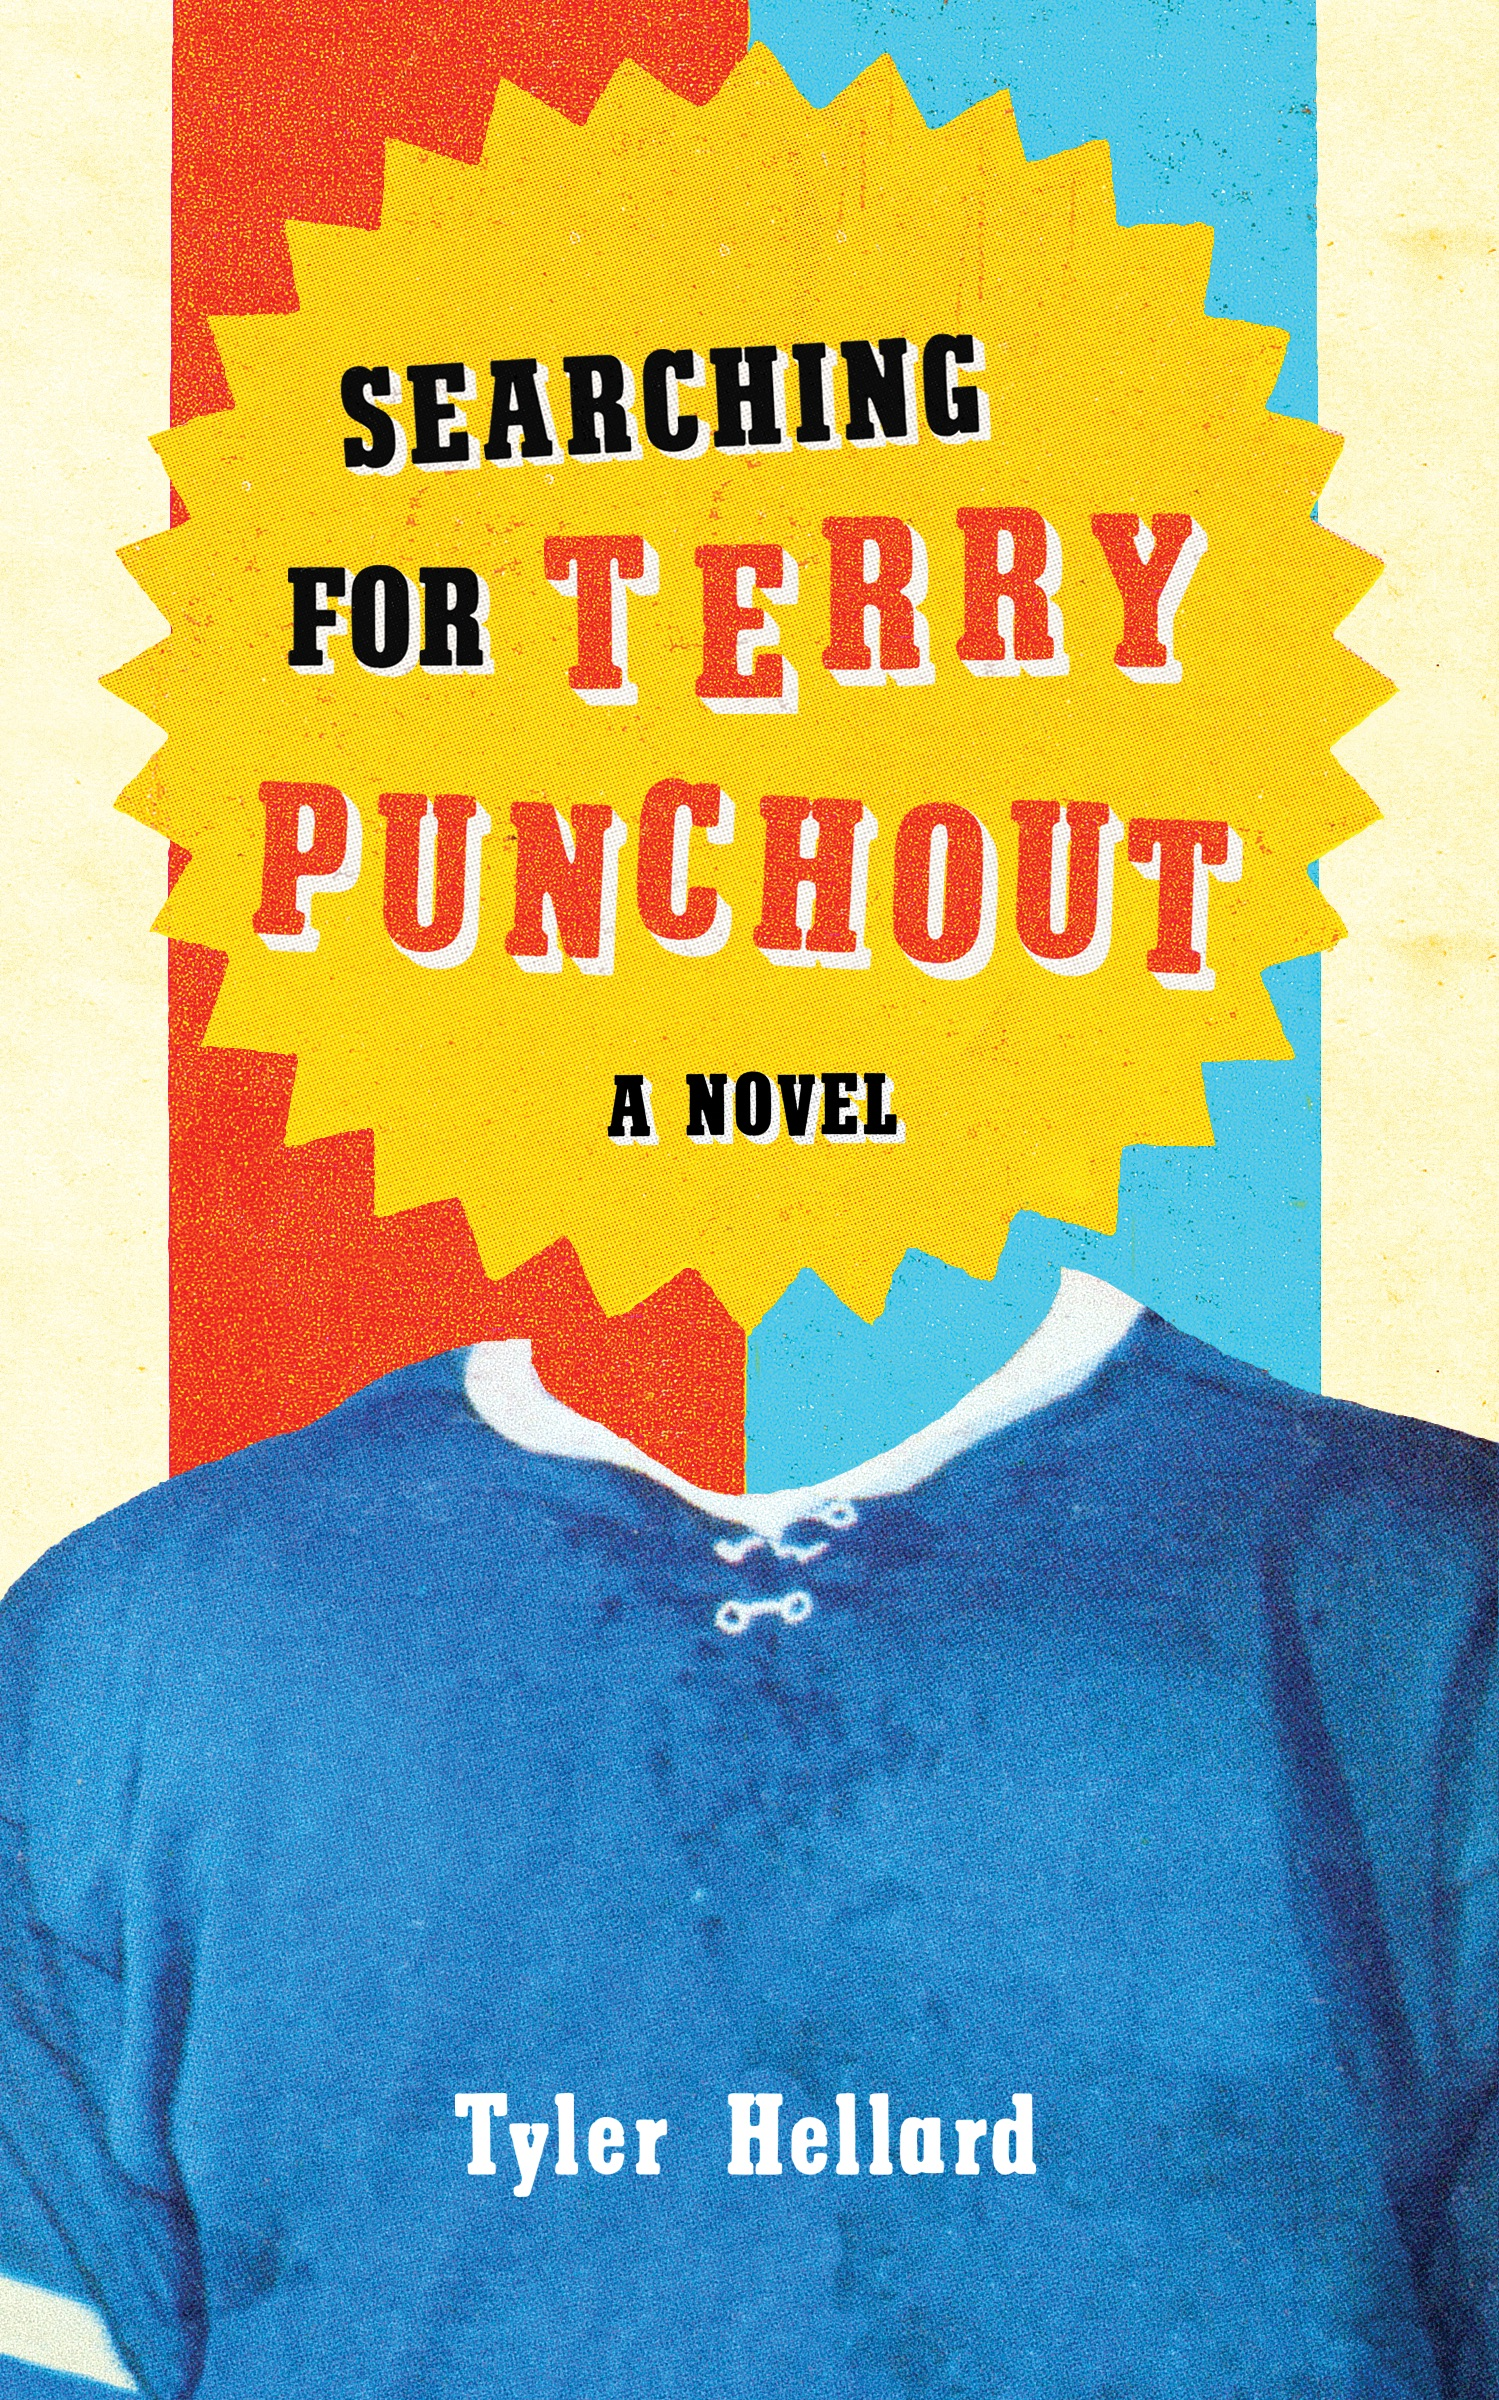 Searching for Terry Punchout